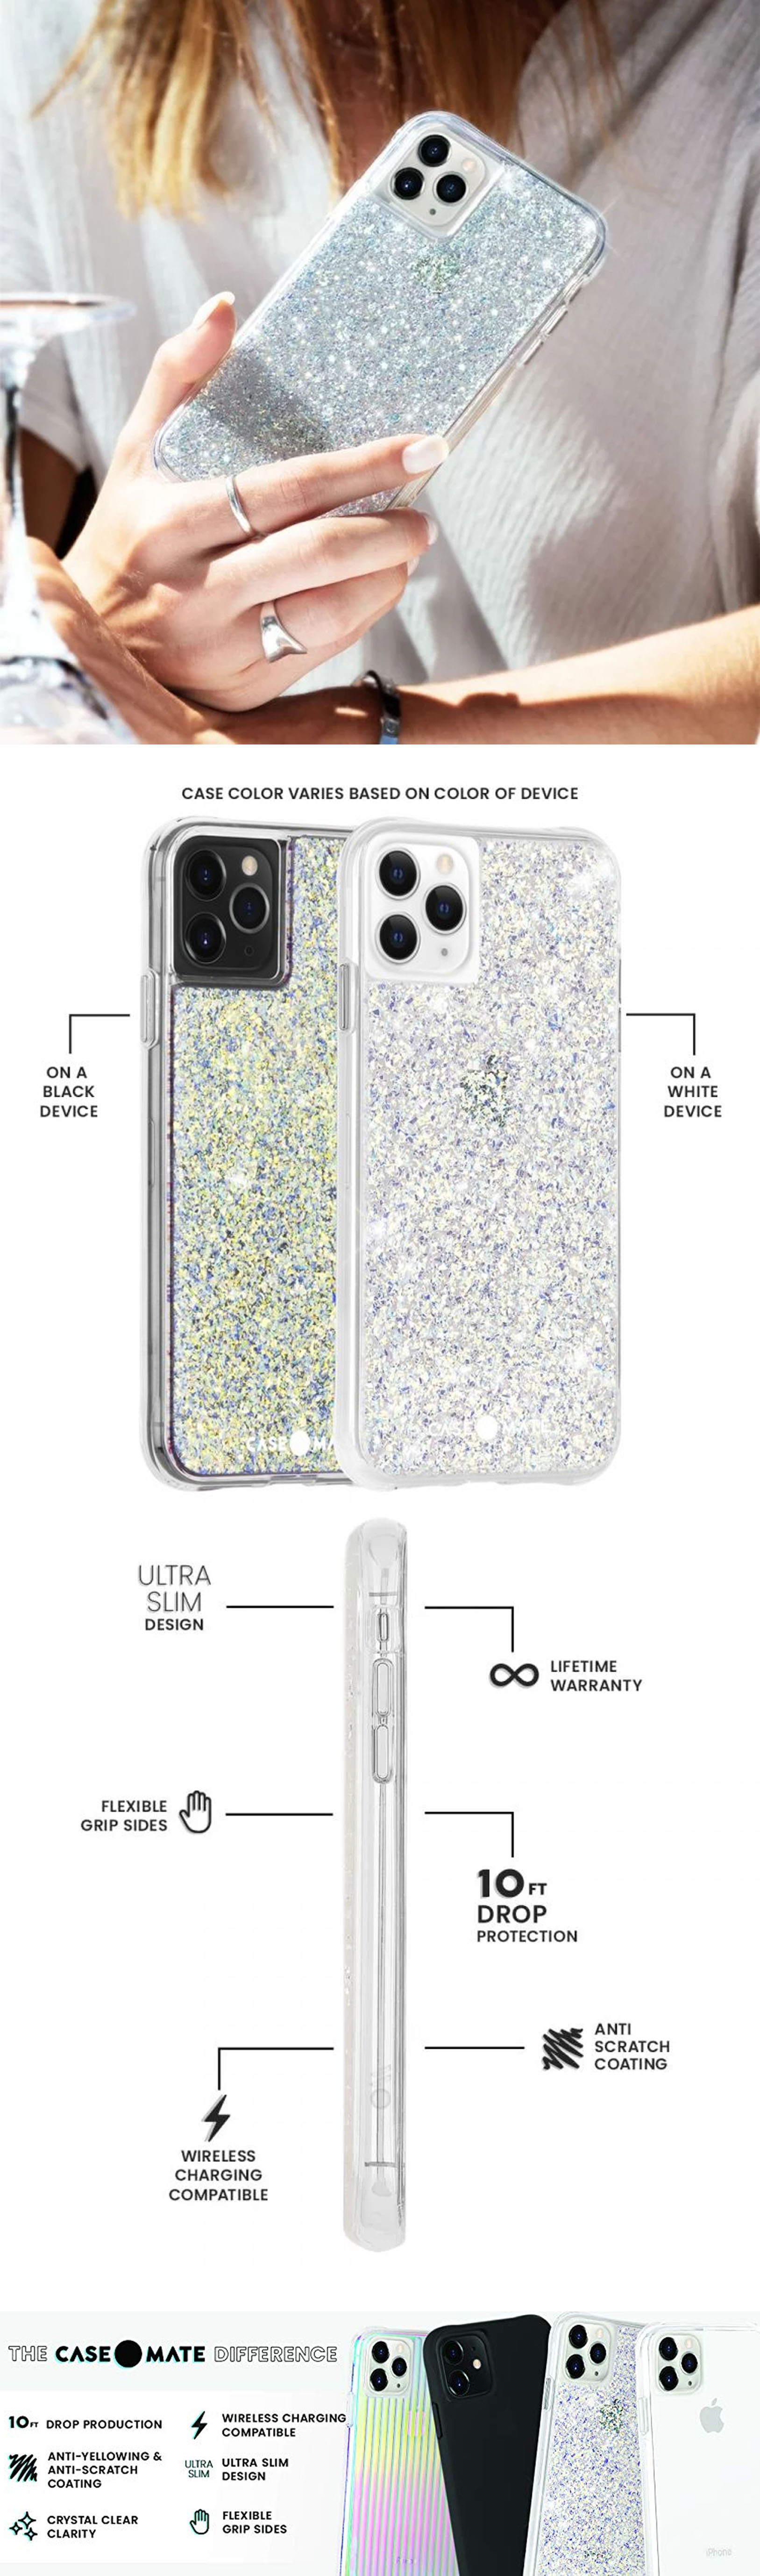 case%20mate/846127185578/1-des-fx-case-mate-twinkle-iphone-11-pro-stardust-color-846127185578-malaysia-authorised-retailer